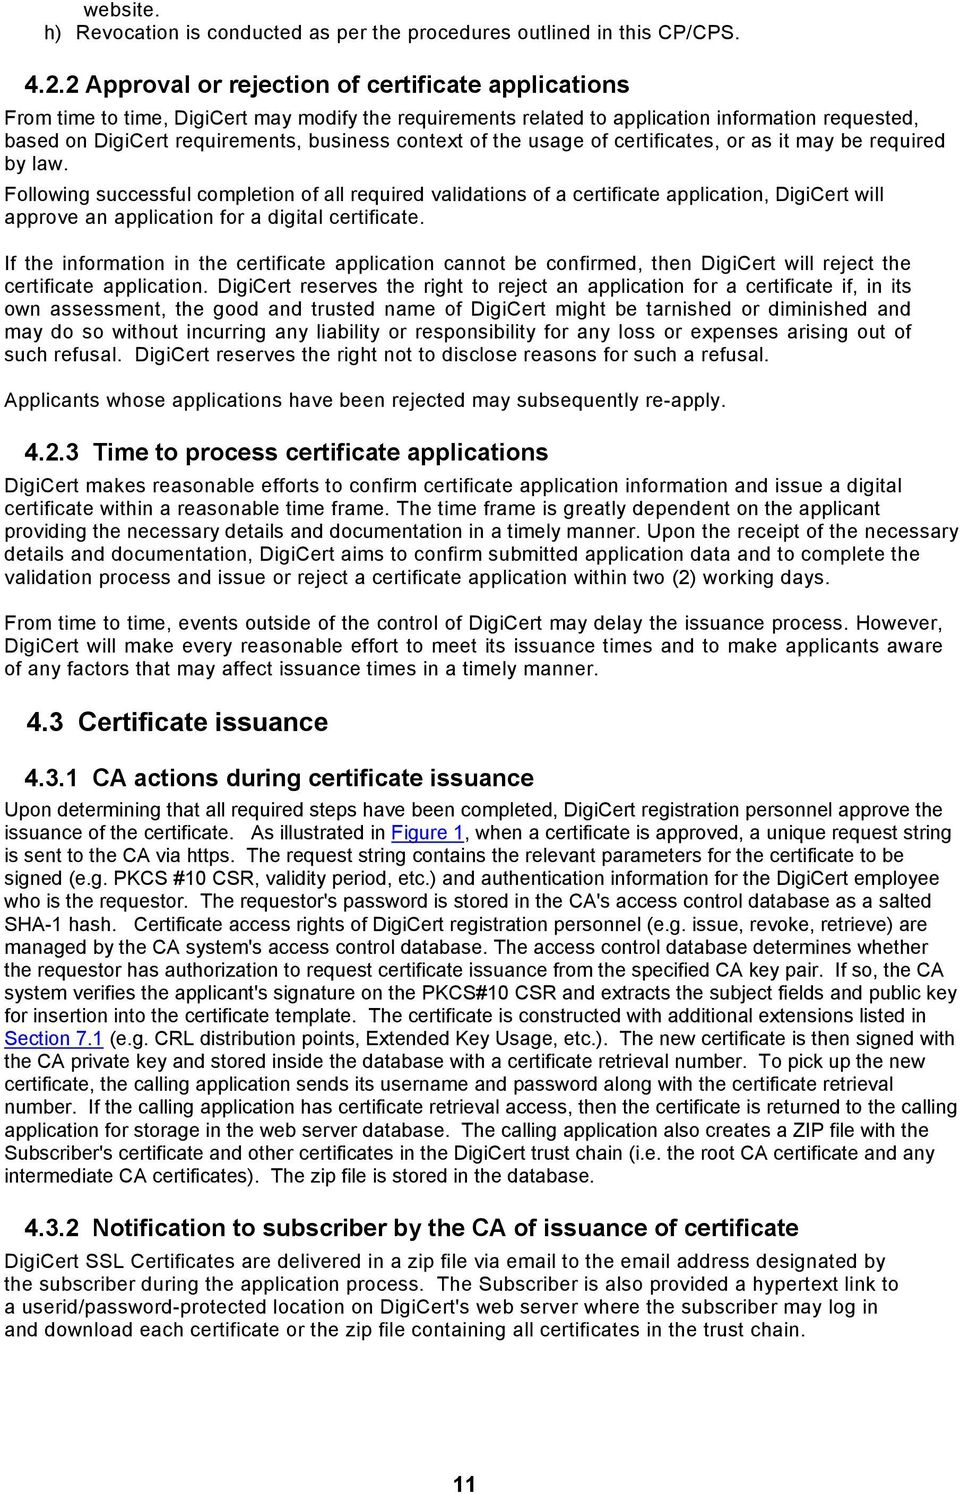 context of the usage of certificates, or as it may be required by law.